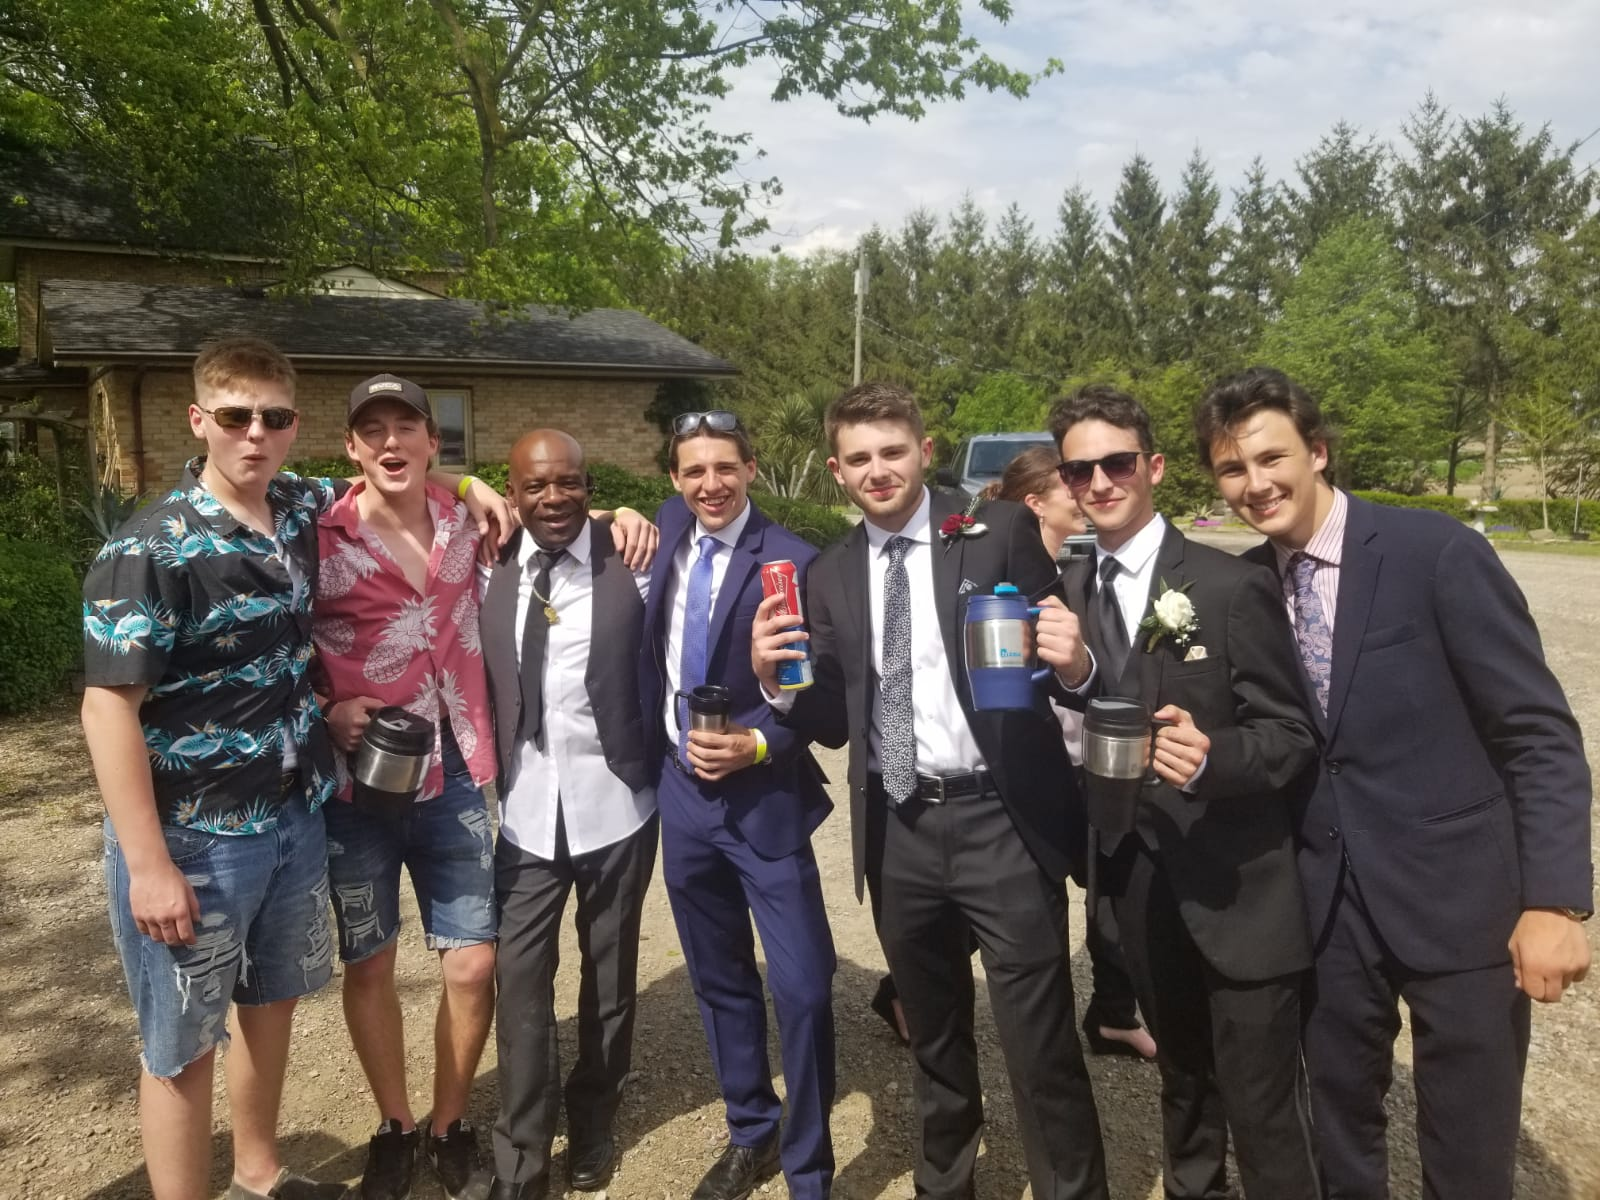 Prom Limo Bus Rentals